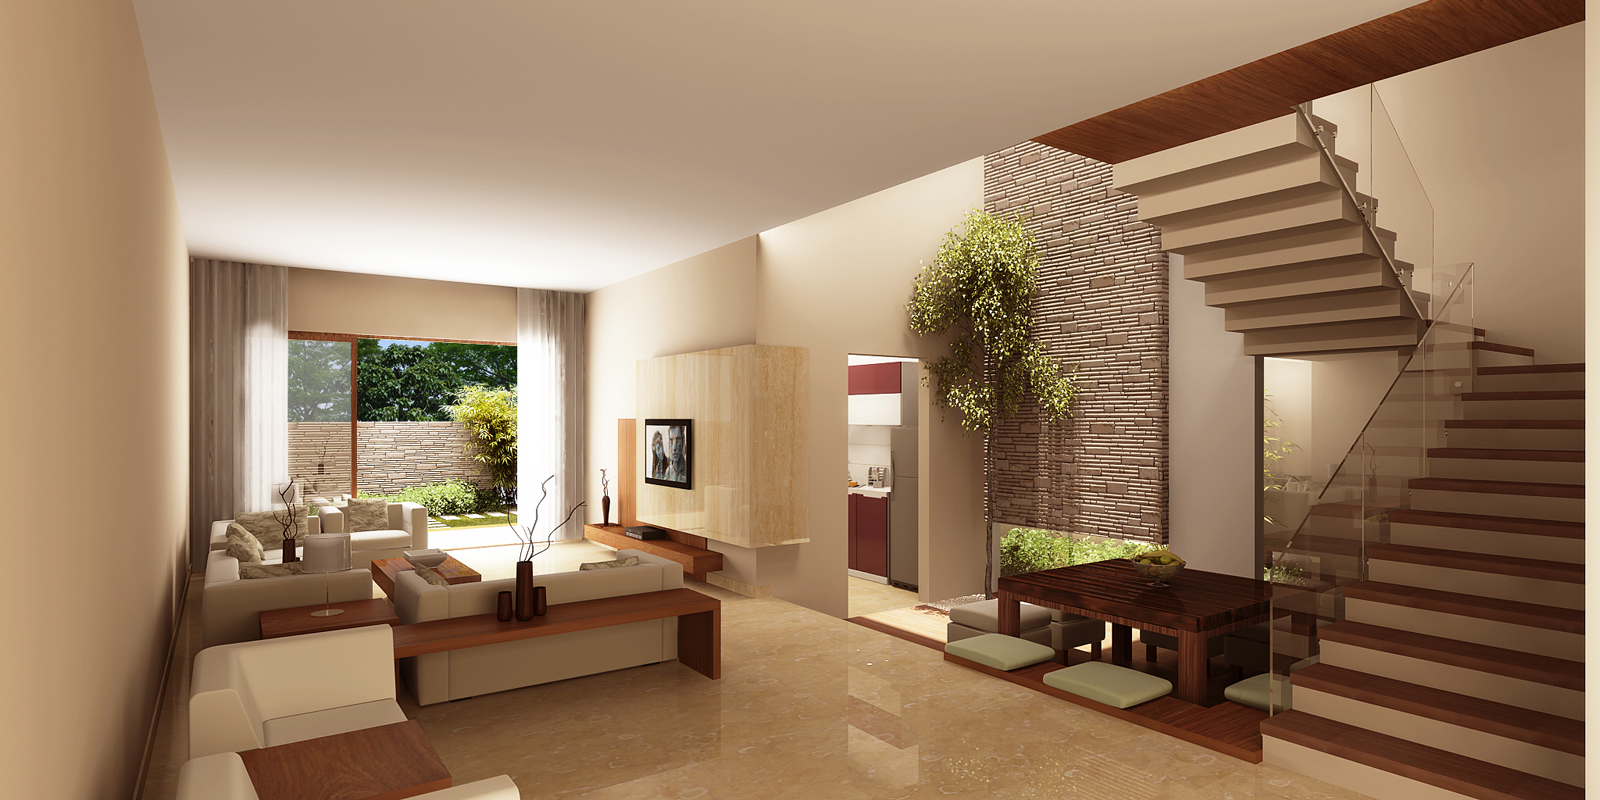 Best Home Interior Design Best Home Interiors Kerala Style Idea For House Designs In